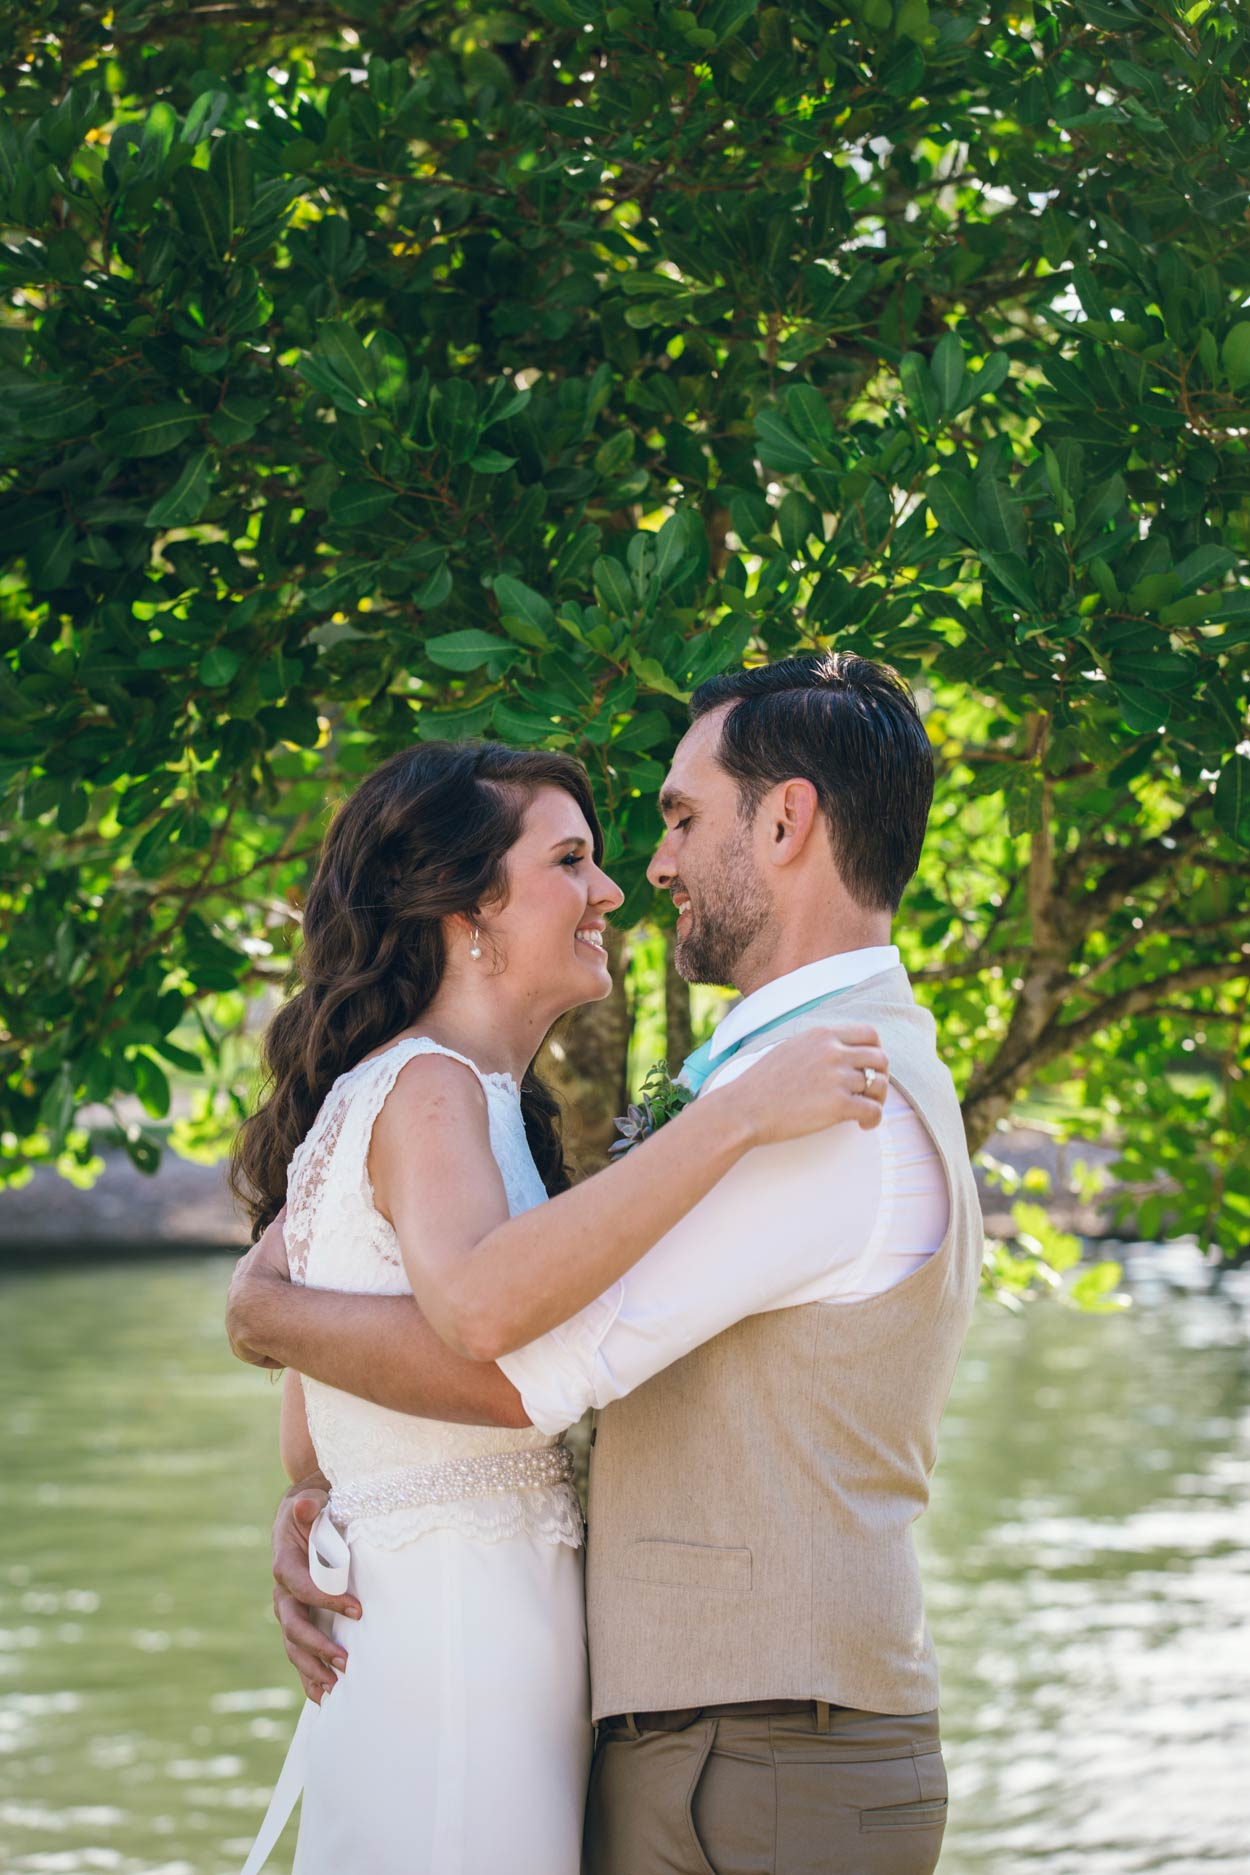 Noosa River Wedding, Sunshine Coast Photographer - Sunshine Coast, Brisbane, Australian Destination Eco Elopement